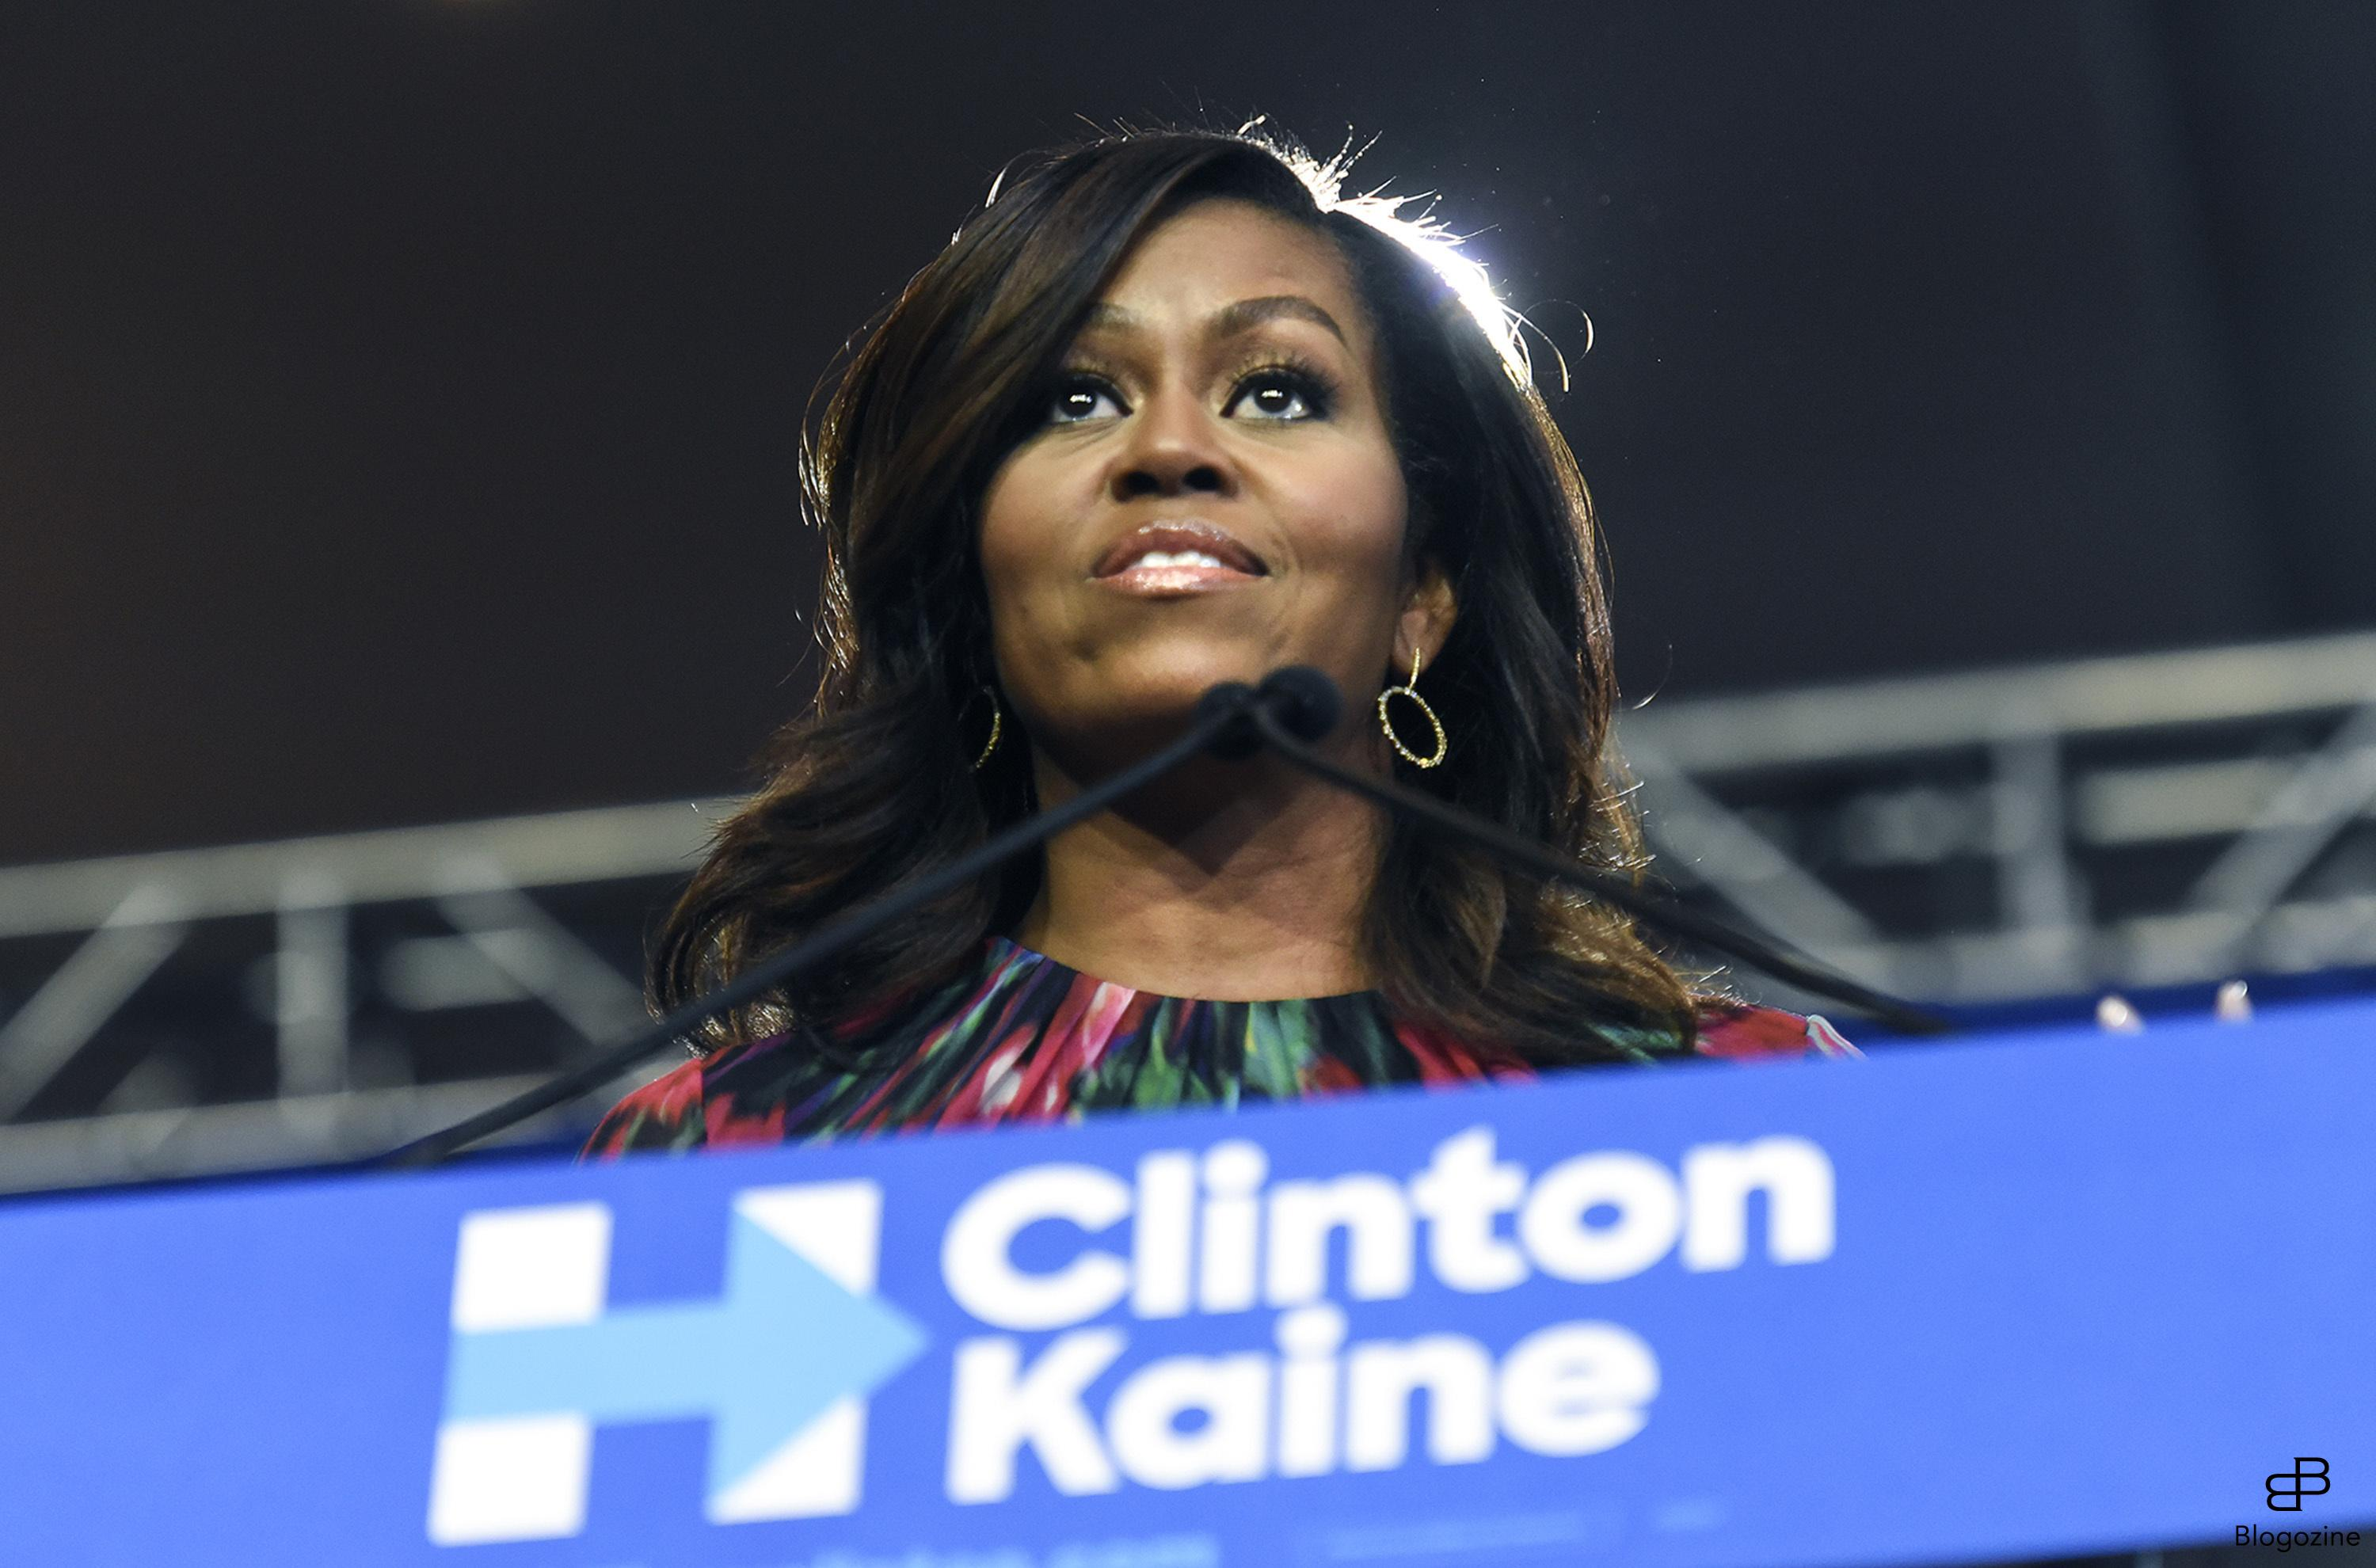 6287683 First lady Michelle Obama stumped for Hillary Clinton during a speech on Tuesday, October 4, 2016 in the Convention Center in Charlotte, NC, USA. Photo by John D. Simmons/Charlotte Observer/TNS/ABACAPRESS.COM COPYRIGHT STELLA PICTURES